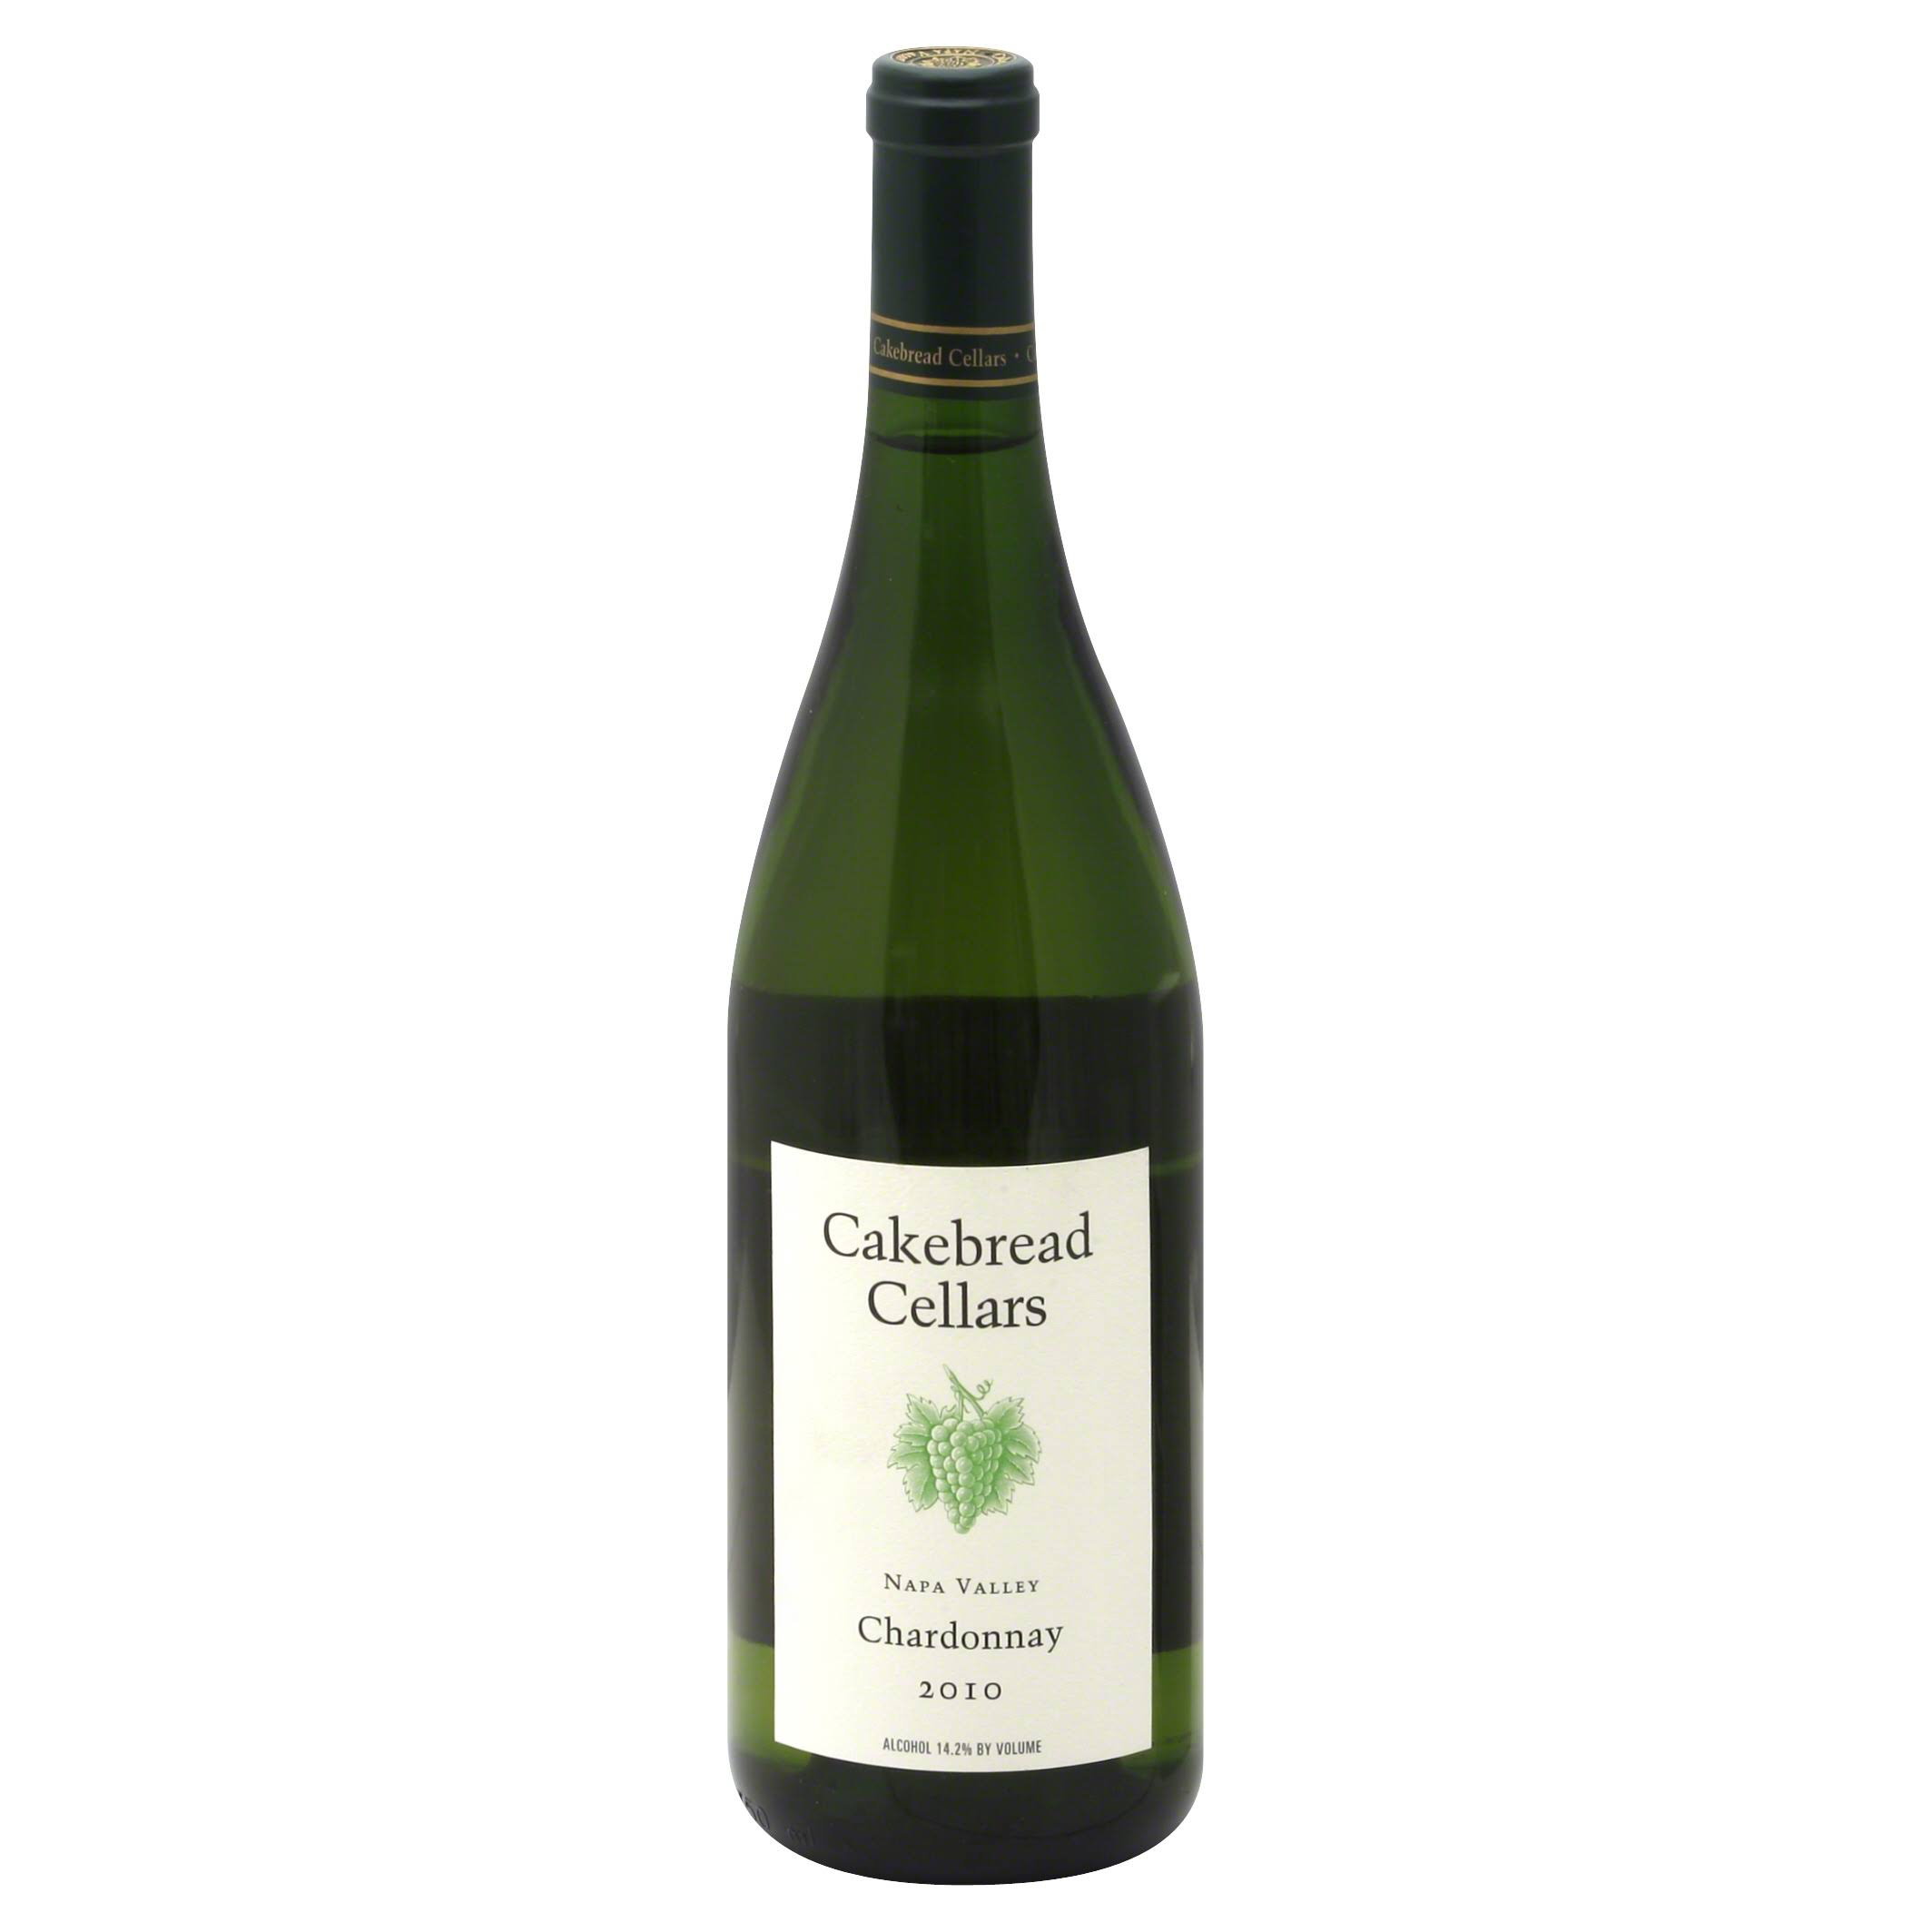 Cakebread Cellars Chardonnay, Napa Valley, 2010 - 750 ml